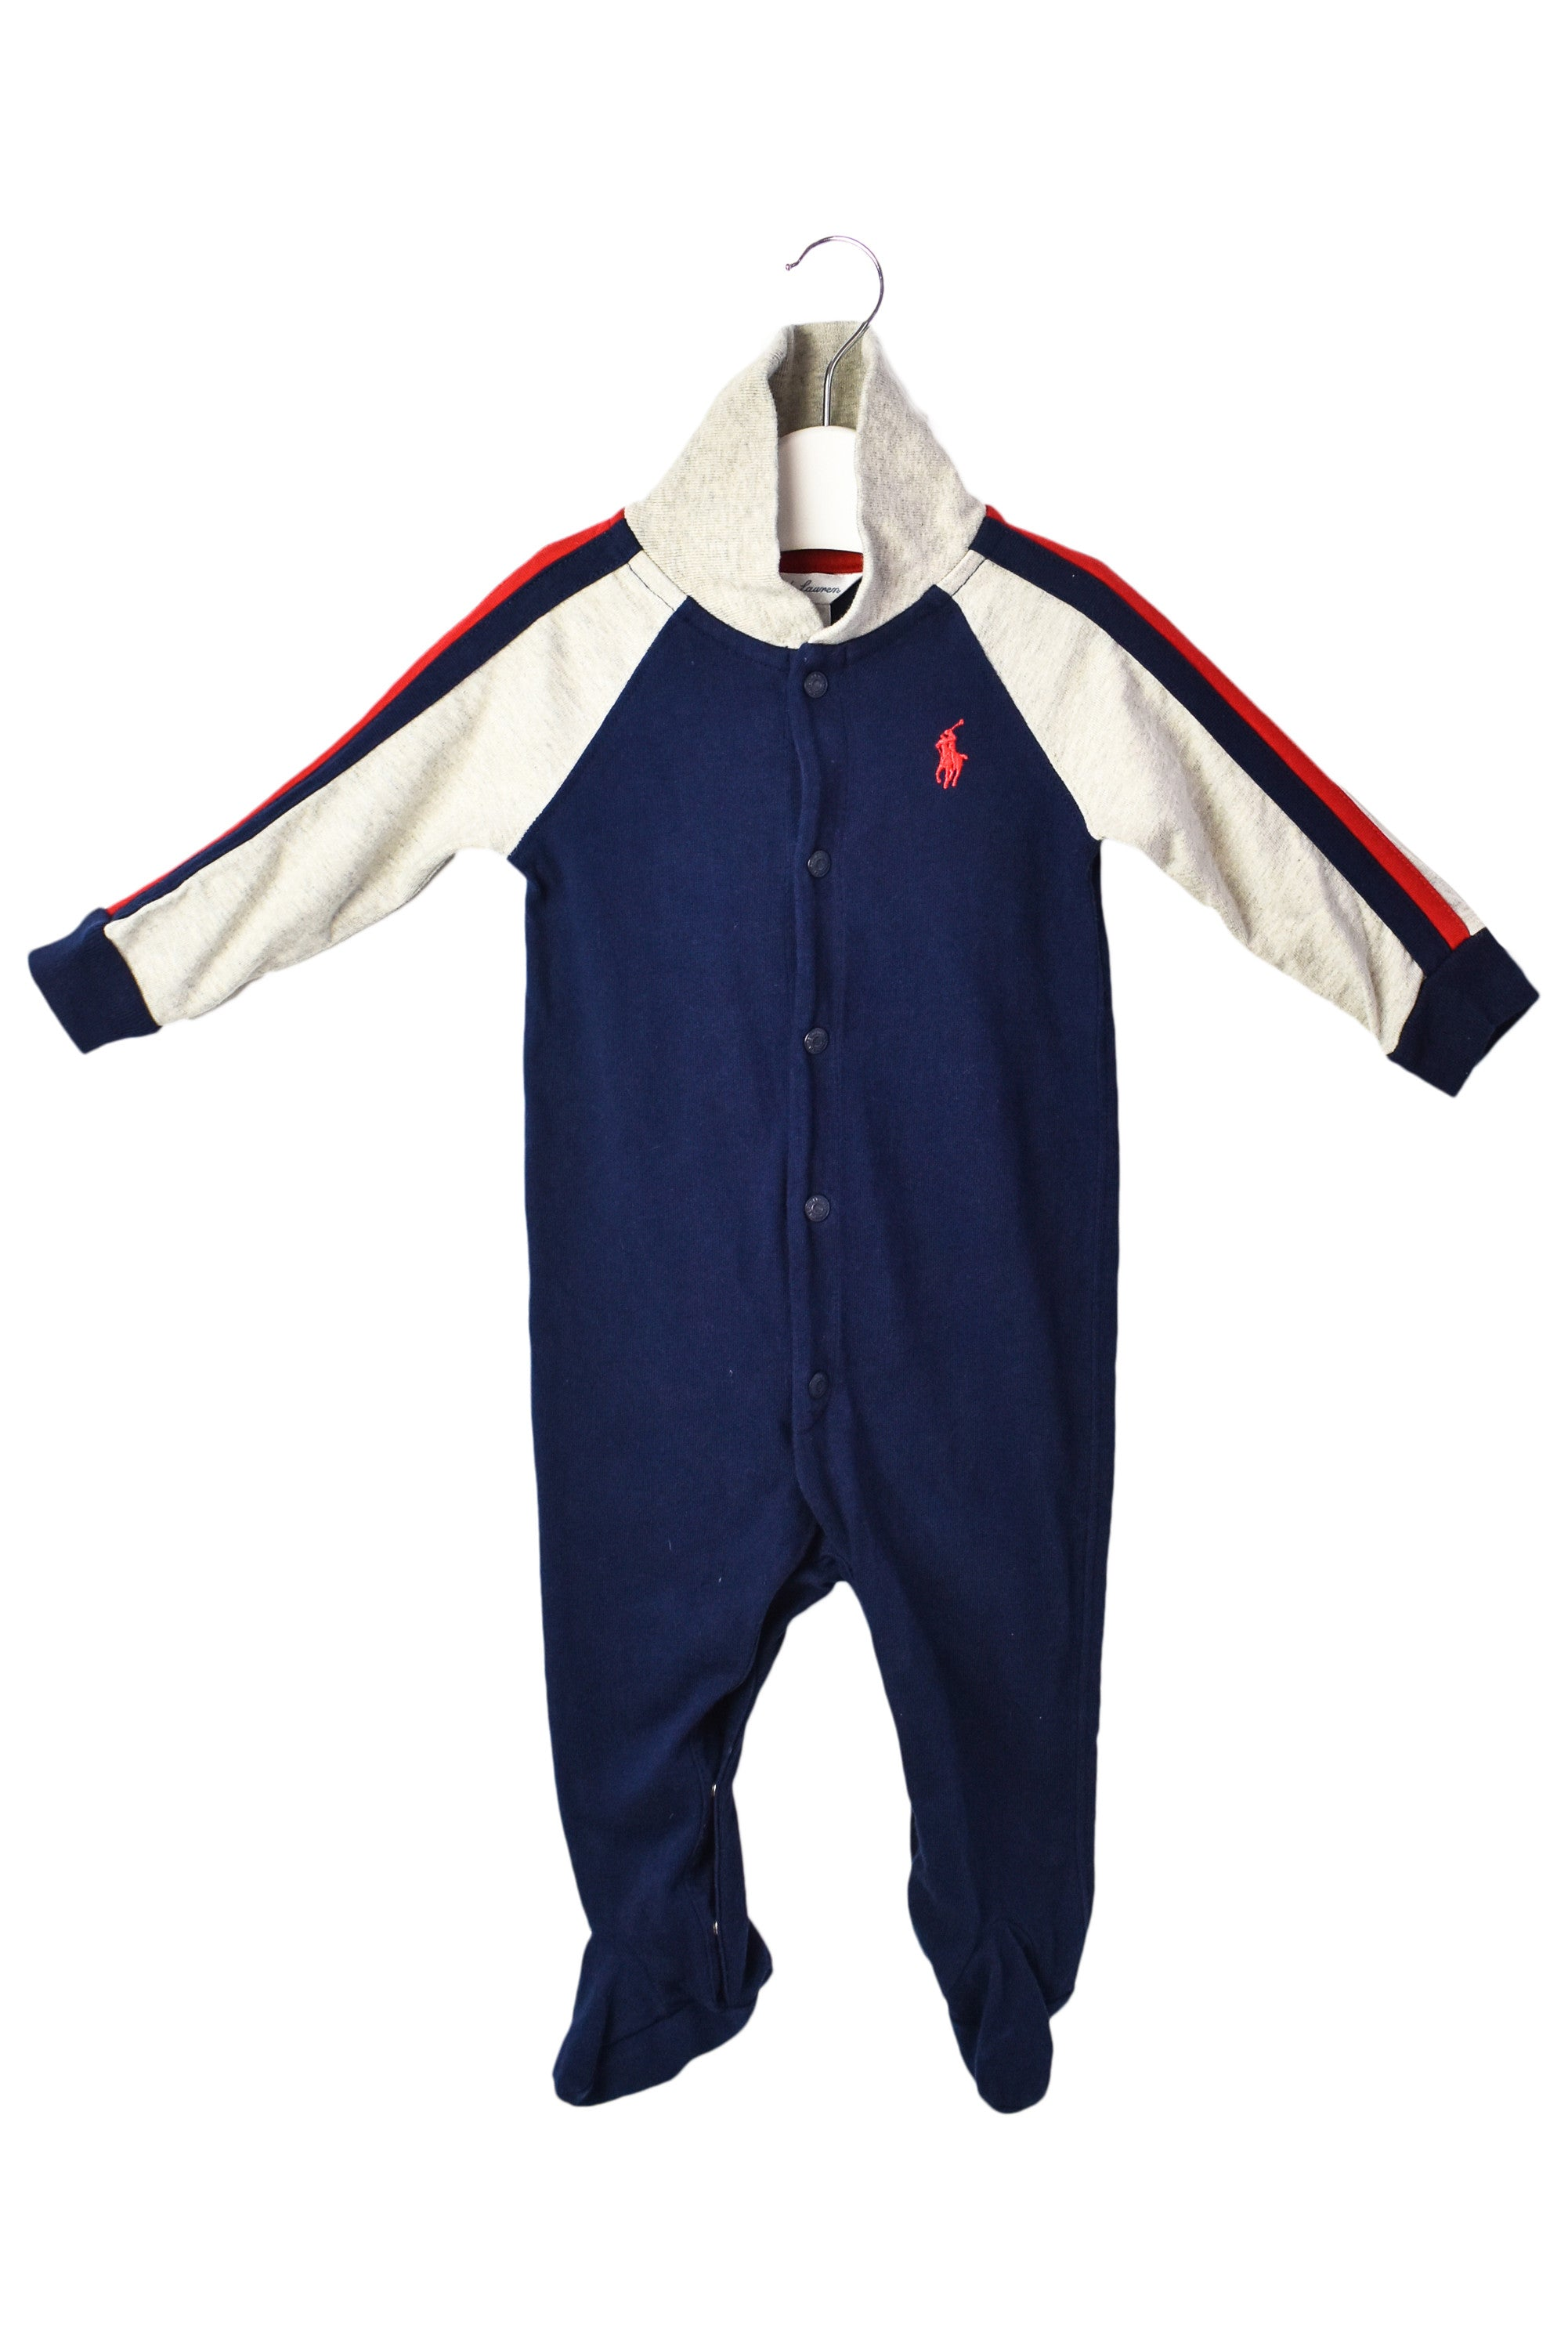 10004853 Ralph Lauren Baby~Jumpsuit 6M, Ralph Lauren Retykle | Online Baby & Kids Clothing Hong Kong